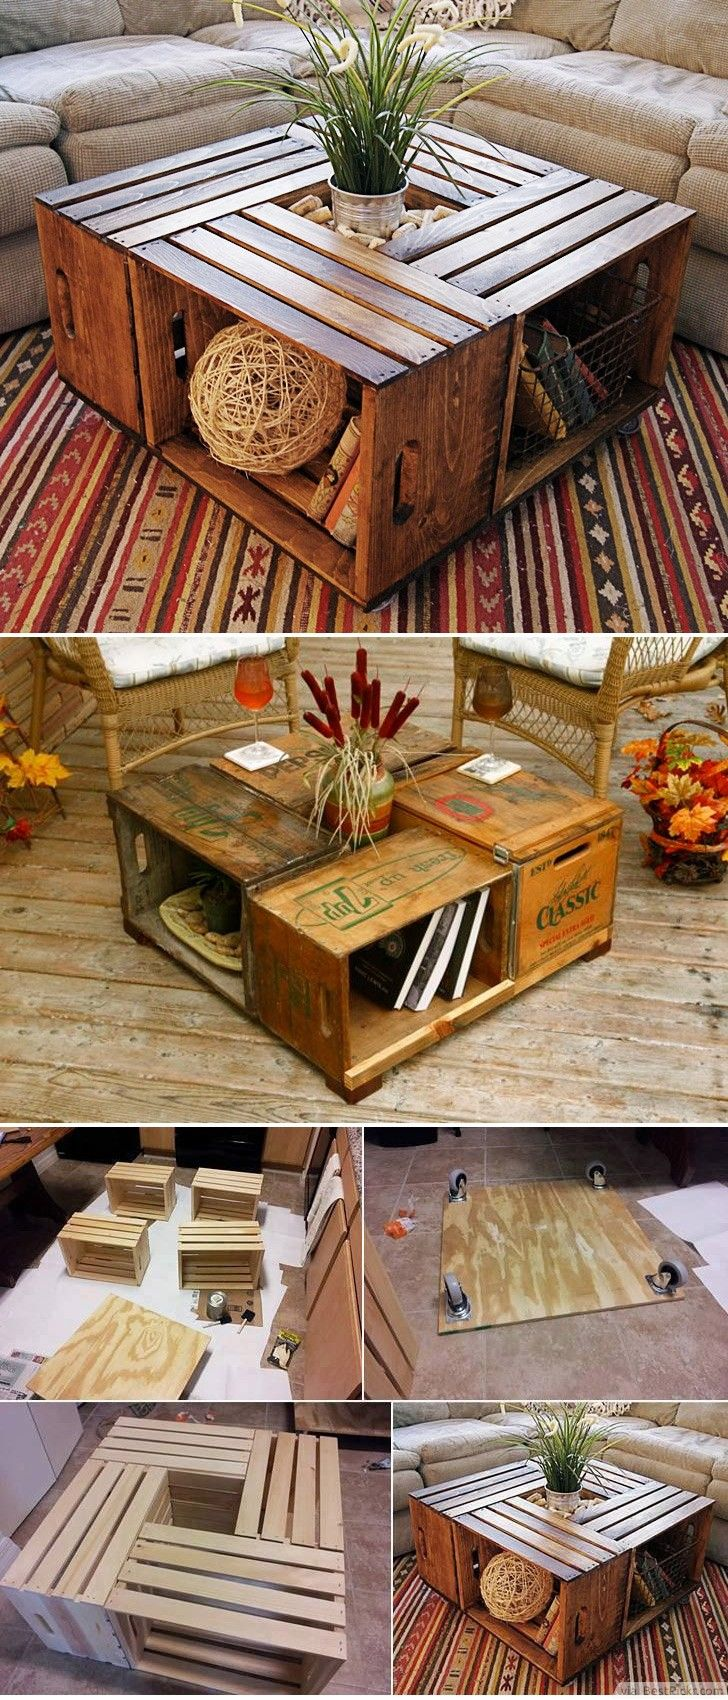 Antique Wine Crate Or Wood Box Coffee Table DIY ❥❥❥ http://bestpickr.com/cool-unique-coffee-tables-unusual-ideas